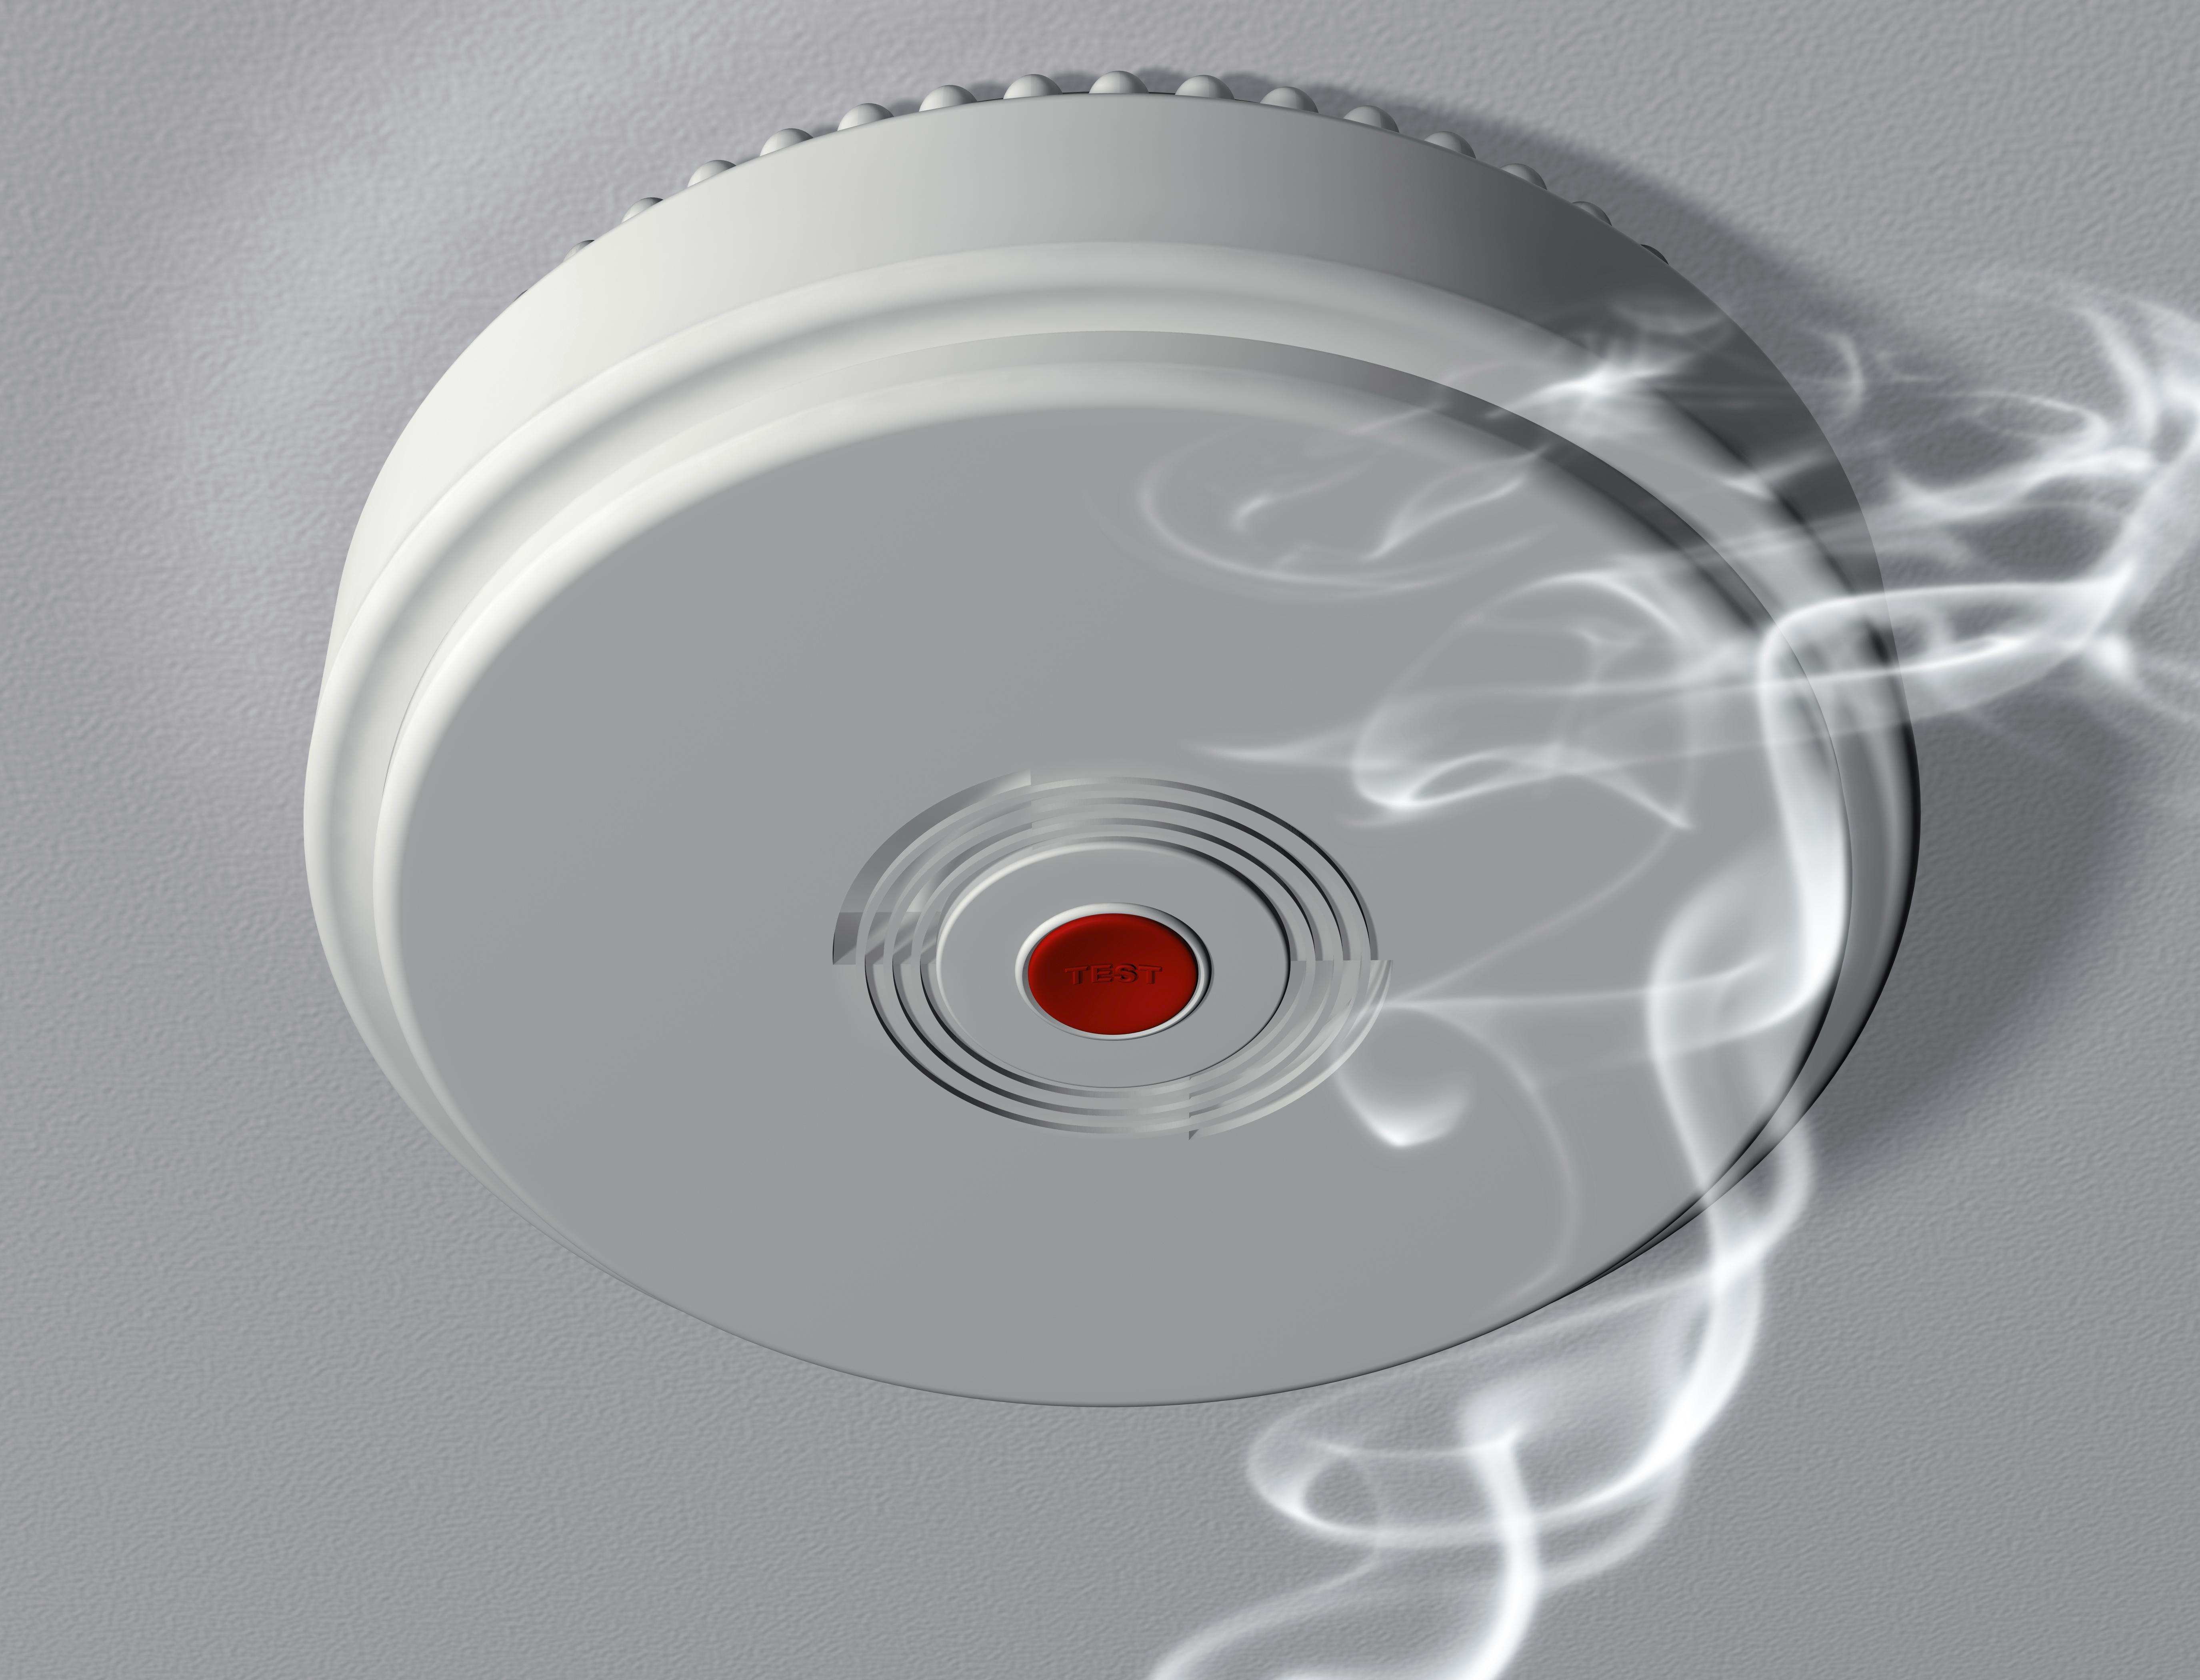 Illustration of a smoke alarm warning of a fire